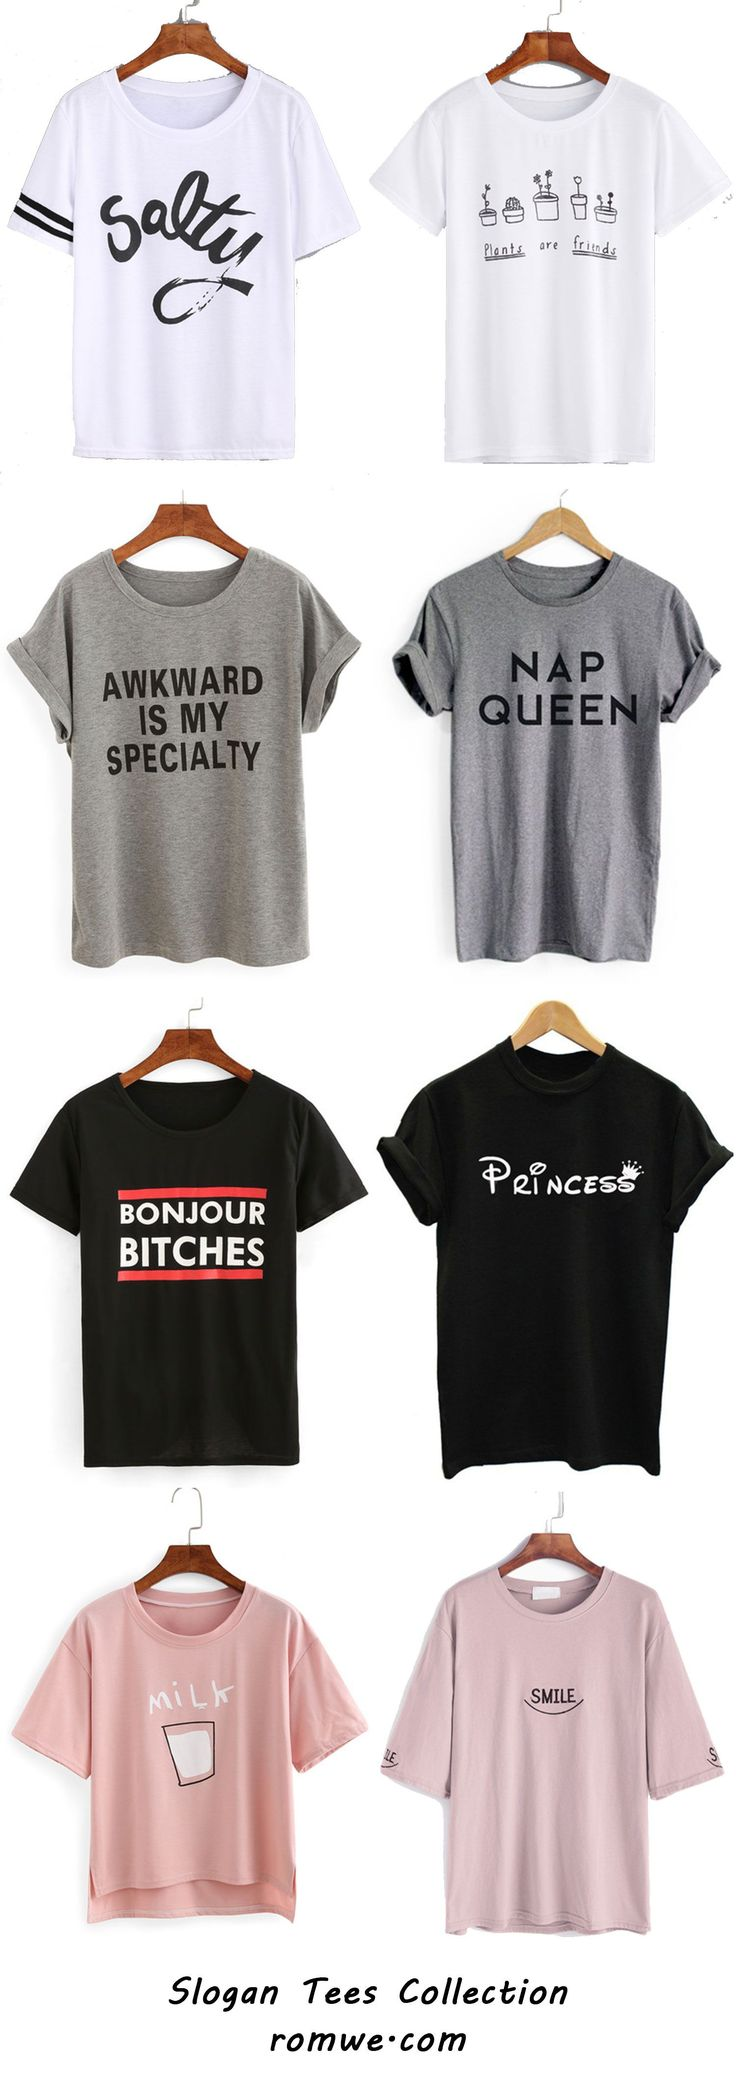 Slogan T-shirts Collection - romwe.com